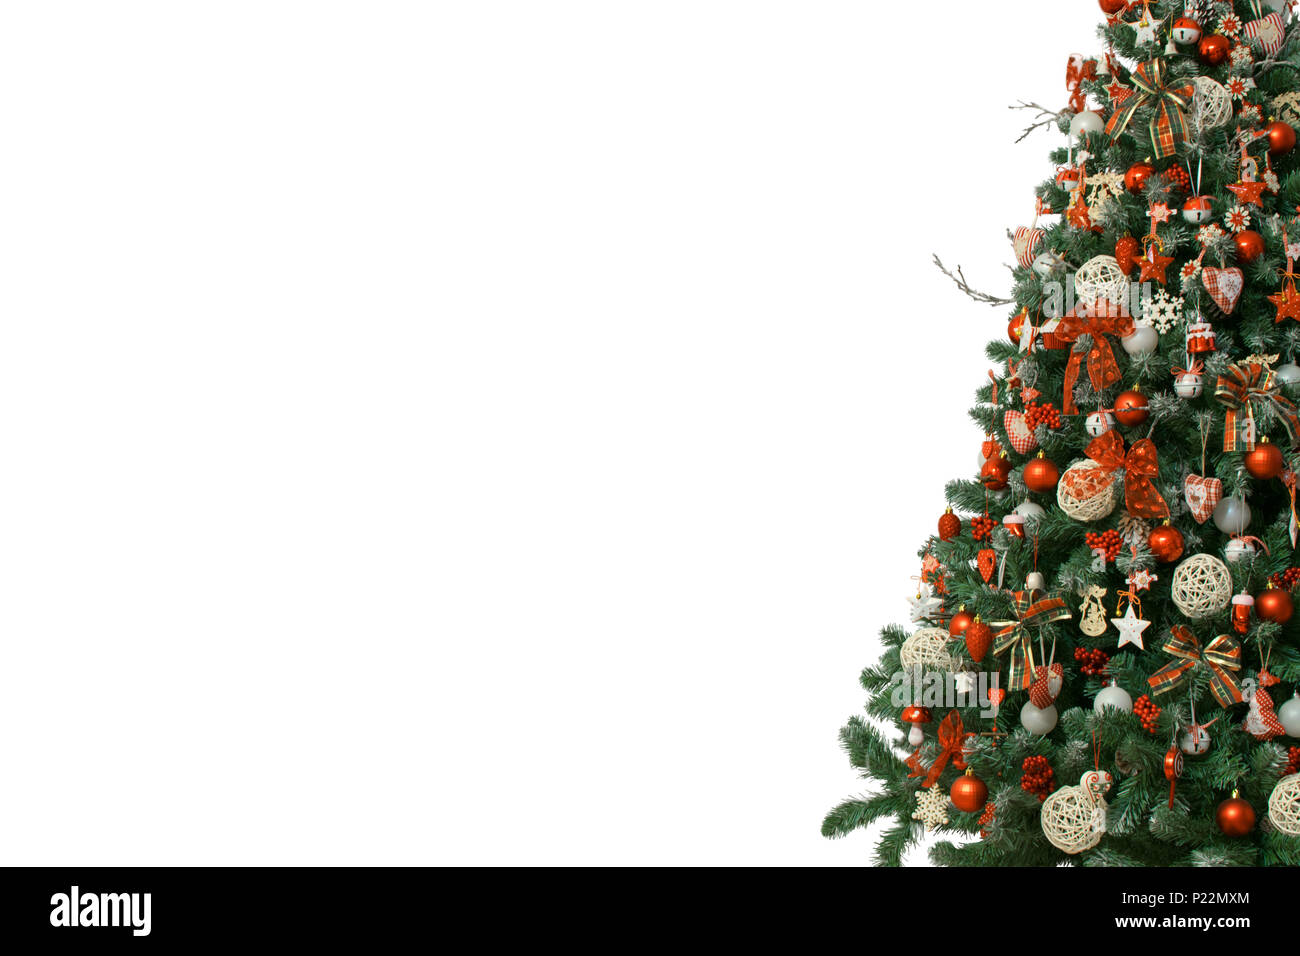 half of christmas tree isolated on white background decorated with vintage ornaments wooden snowflakes red berries and ballsred white jingle bells - Christmas Tree Decorated With Vintage Ornaments